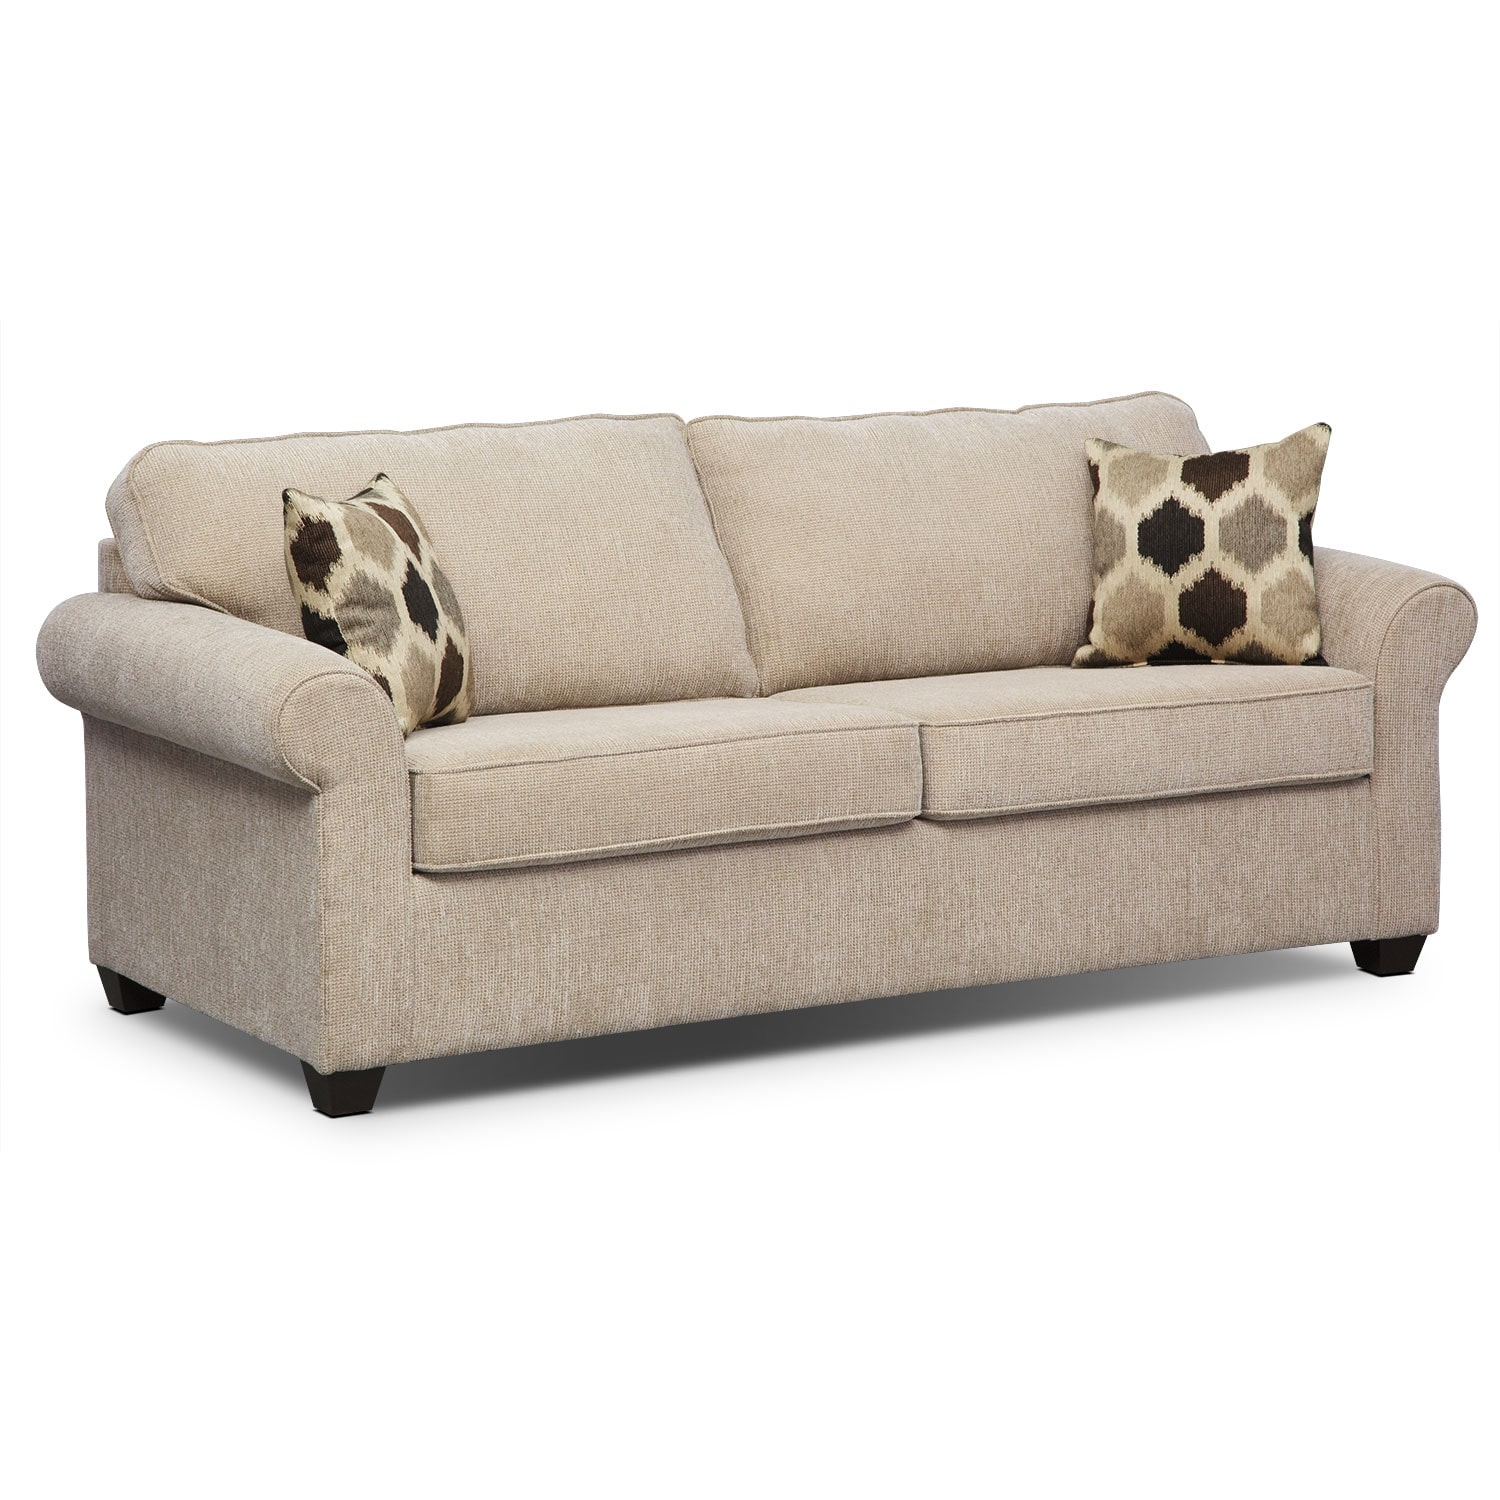 Fletcher queen memory foam sleeper sofa beige american for Furniture sofa bed